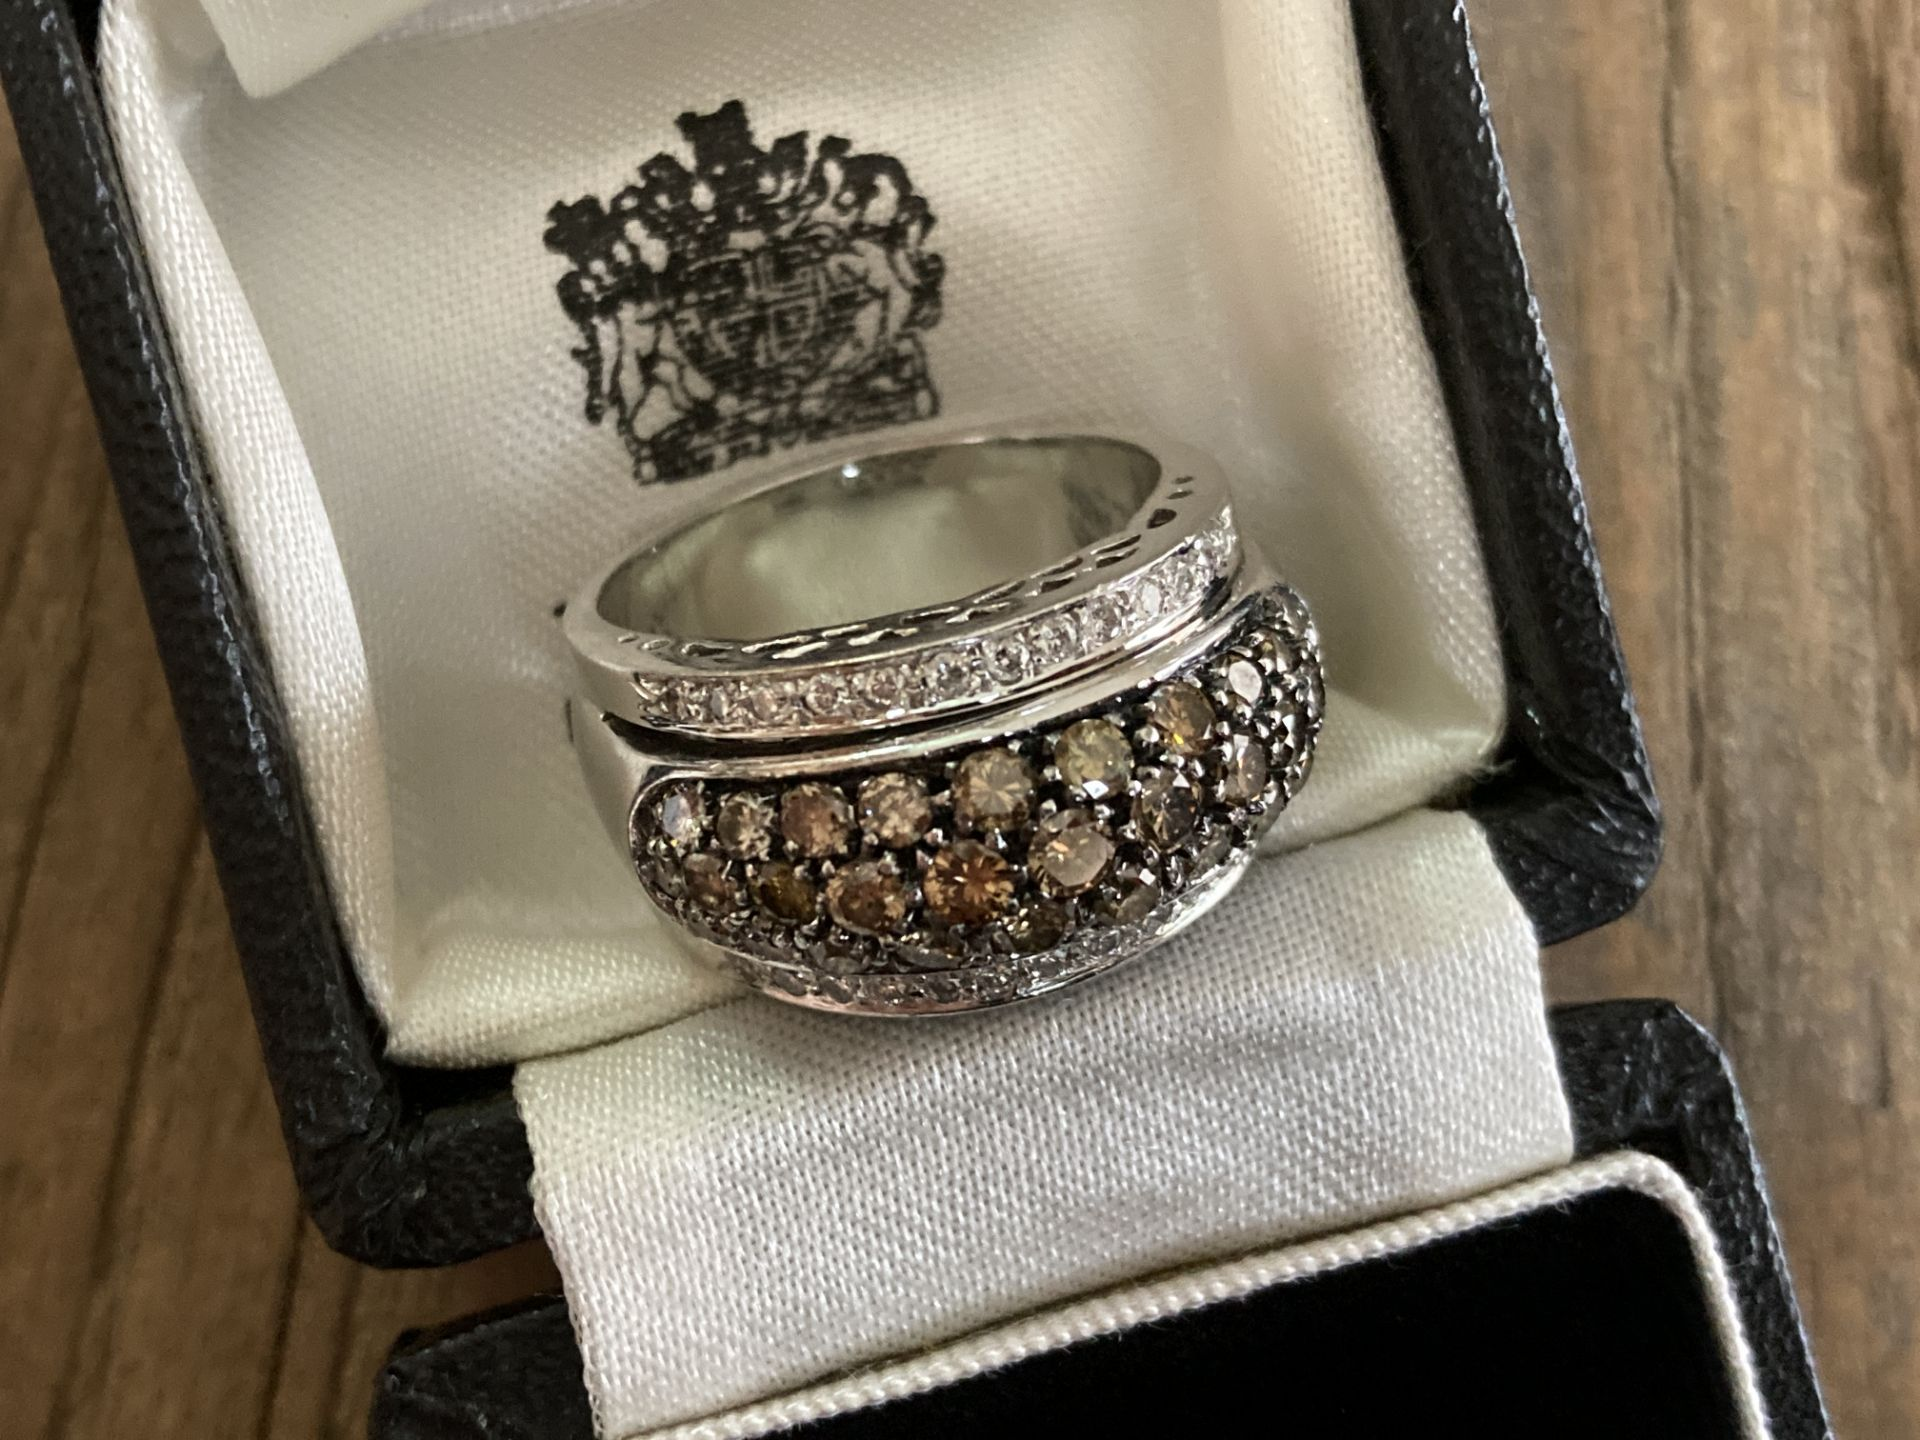 18CT WHITE GOLD 2.5CT BRILLIANT CUT DIAMOND RING (MIXED COLOUR DESIGN) - SIZE: T 1/2 / WEIGHT: 18.6G - Image 4 of 6